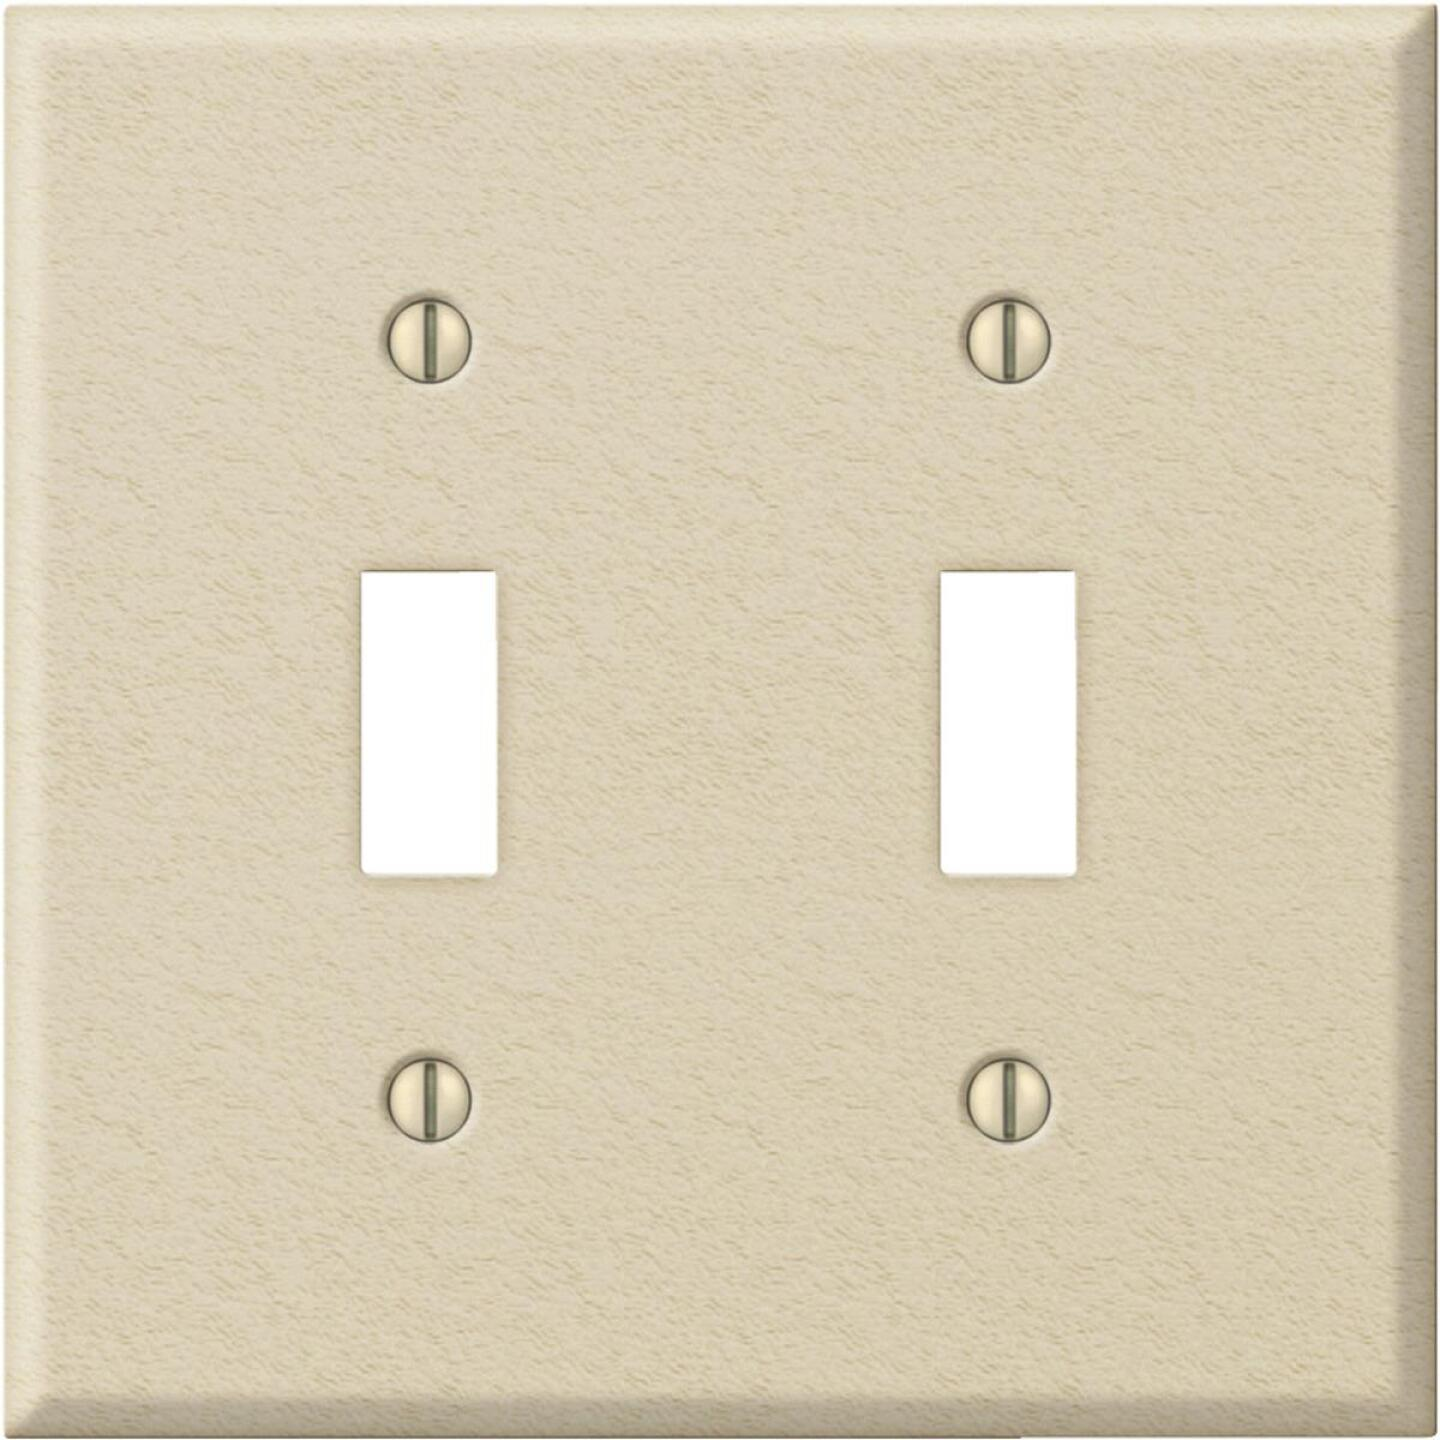 Amerelle PRO 2-Gang Stamped Steel Toggle Switch Wall Plate, Ivory Wrinkle Image 1